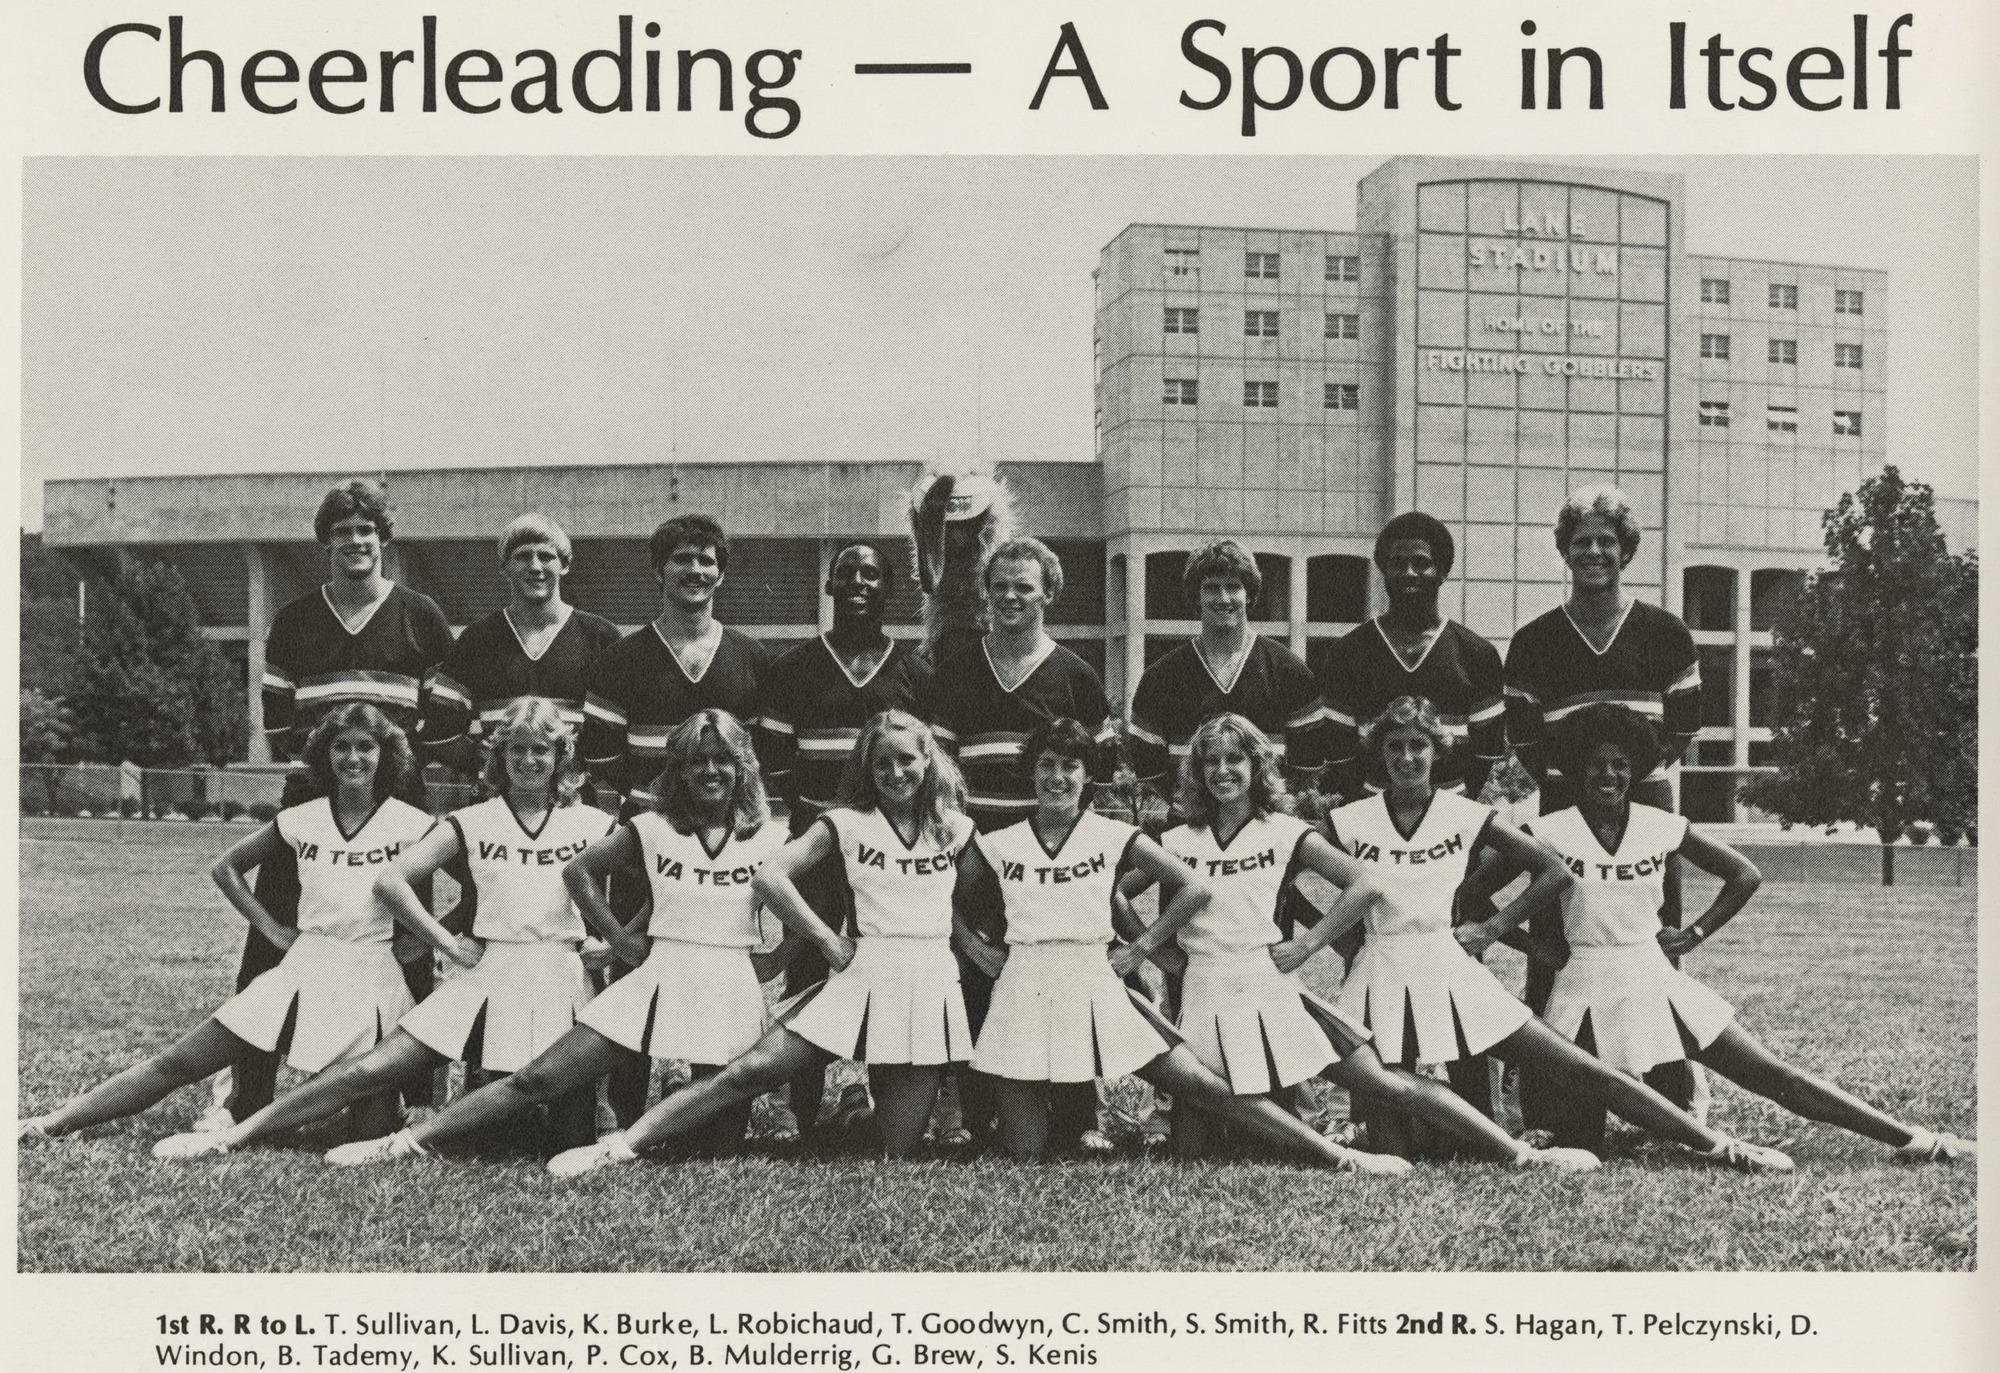 http://spec.lib.vt.edu/pickup/Omeka_upload/Bugle1981_pg154_CheerLeading.jpg